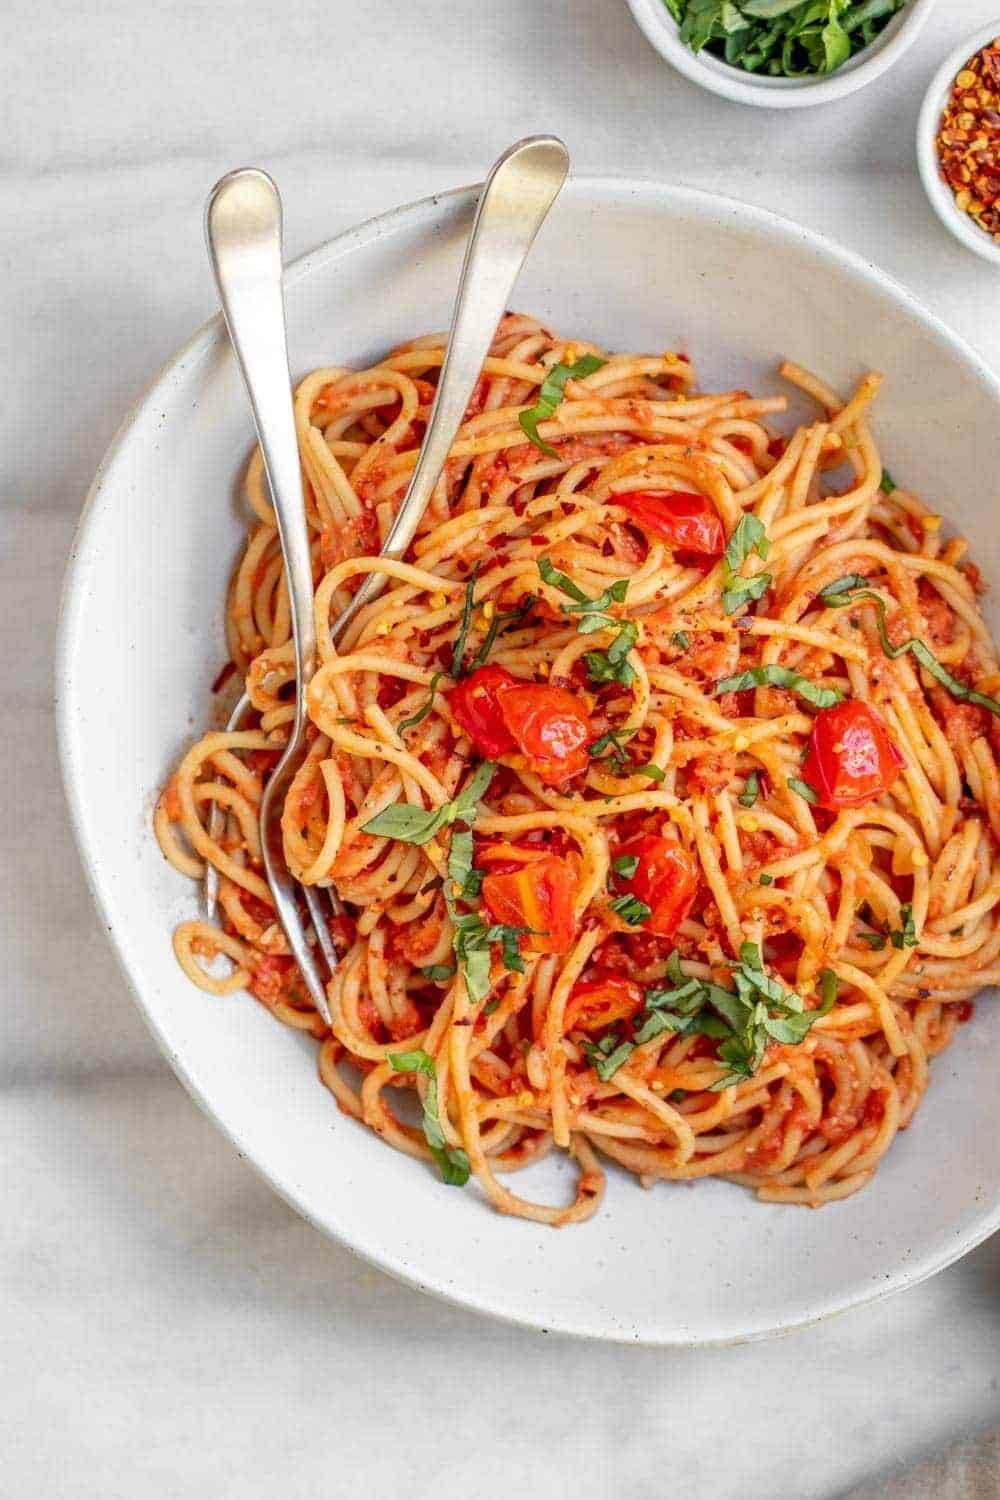 Vegan spaghetti sauce with pasta in a large bowl with two forks.